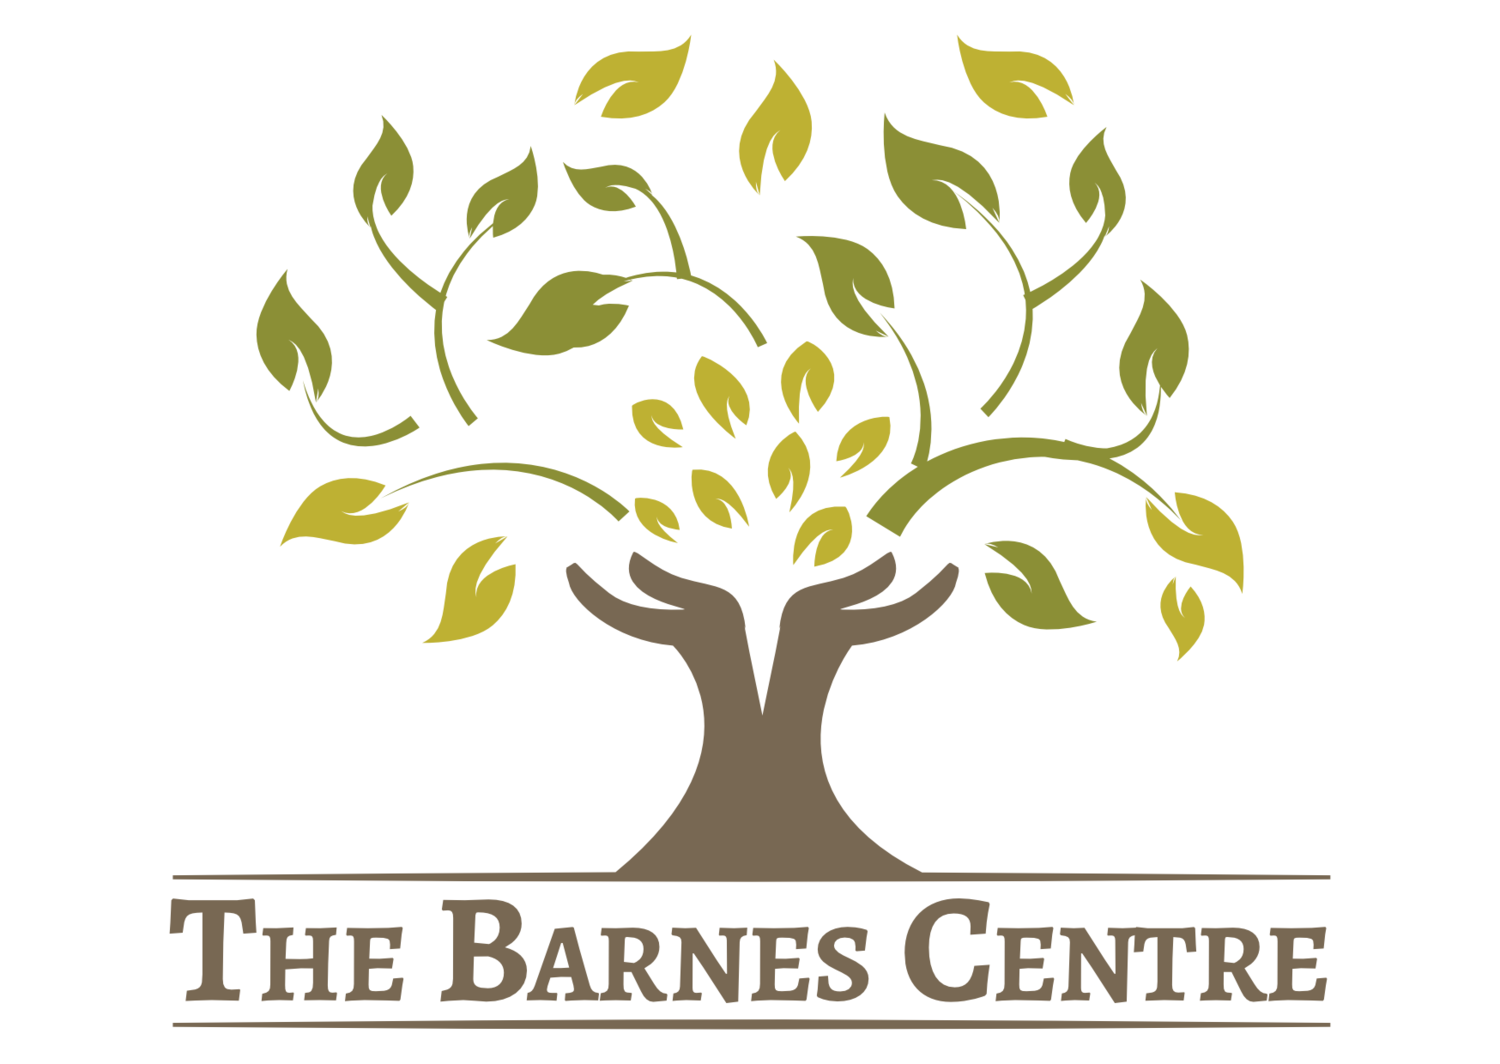 Welcome to The Barnes Centre - The Barnes Centre for